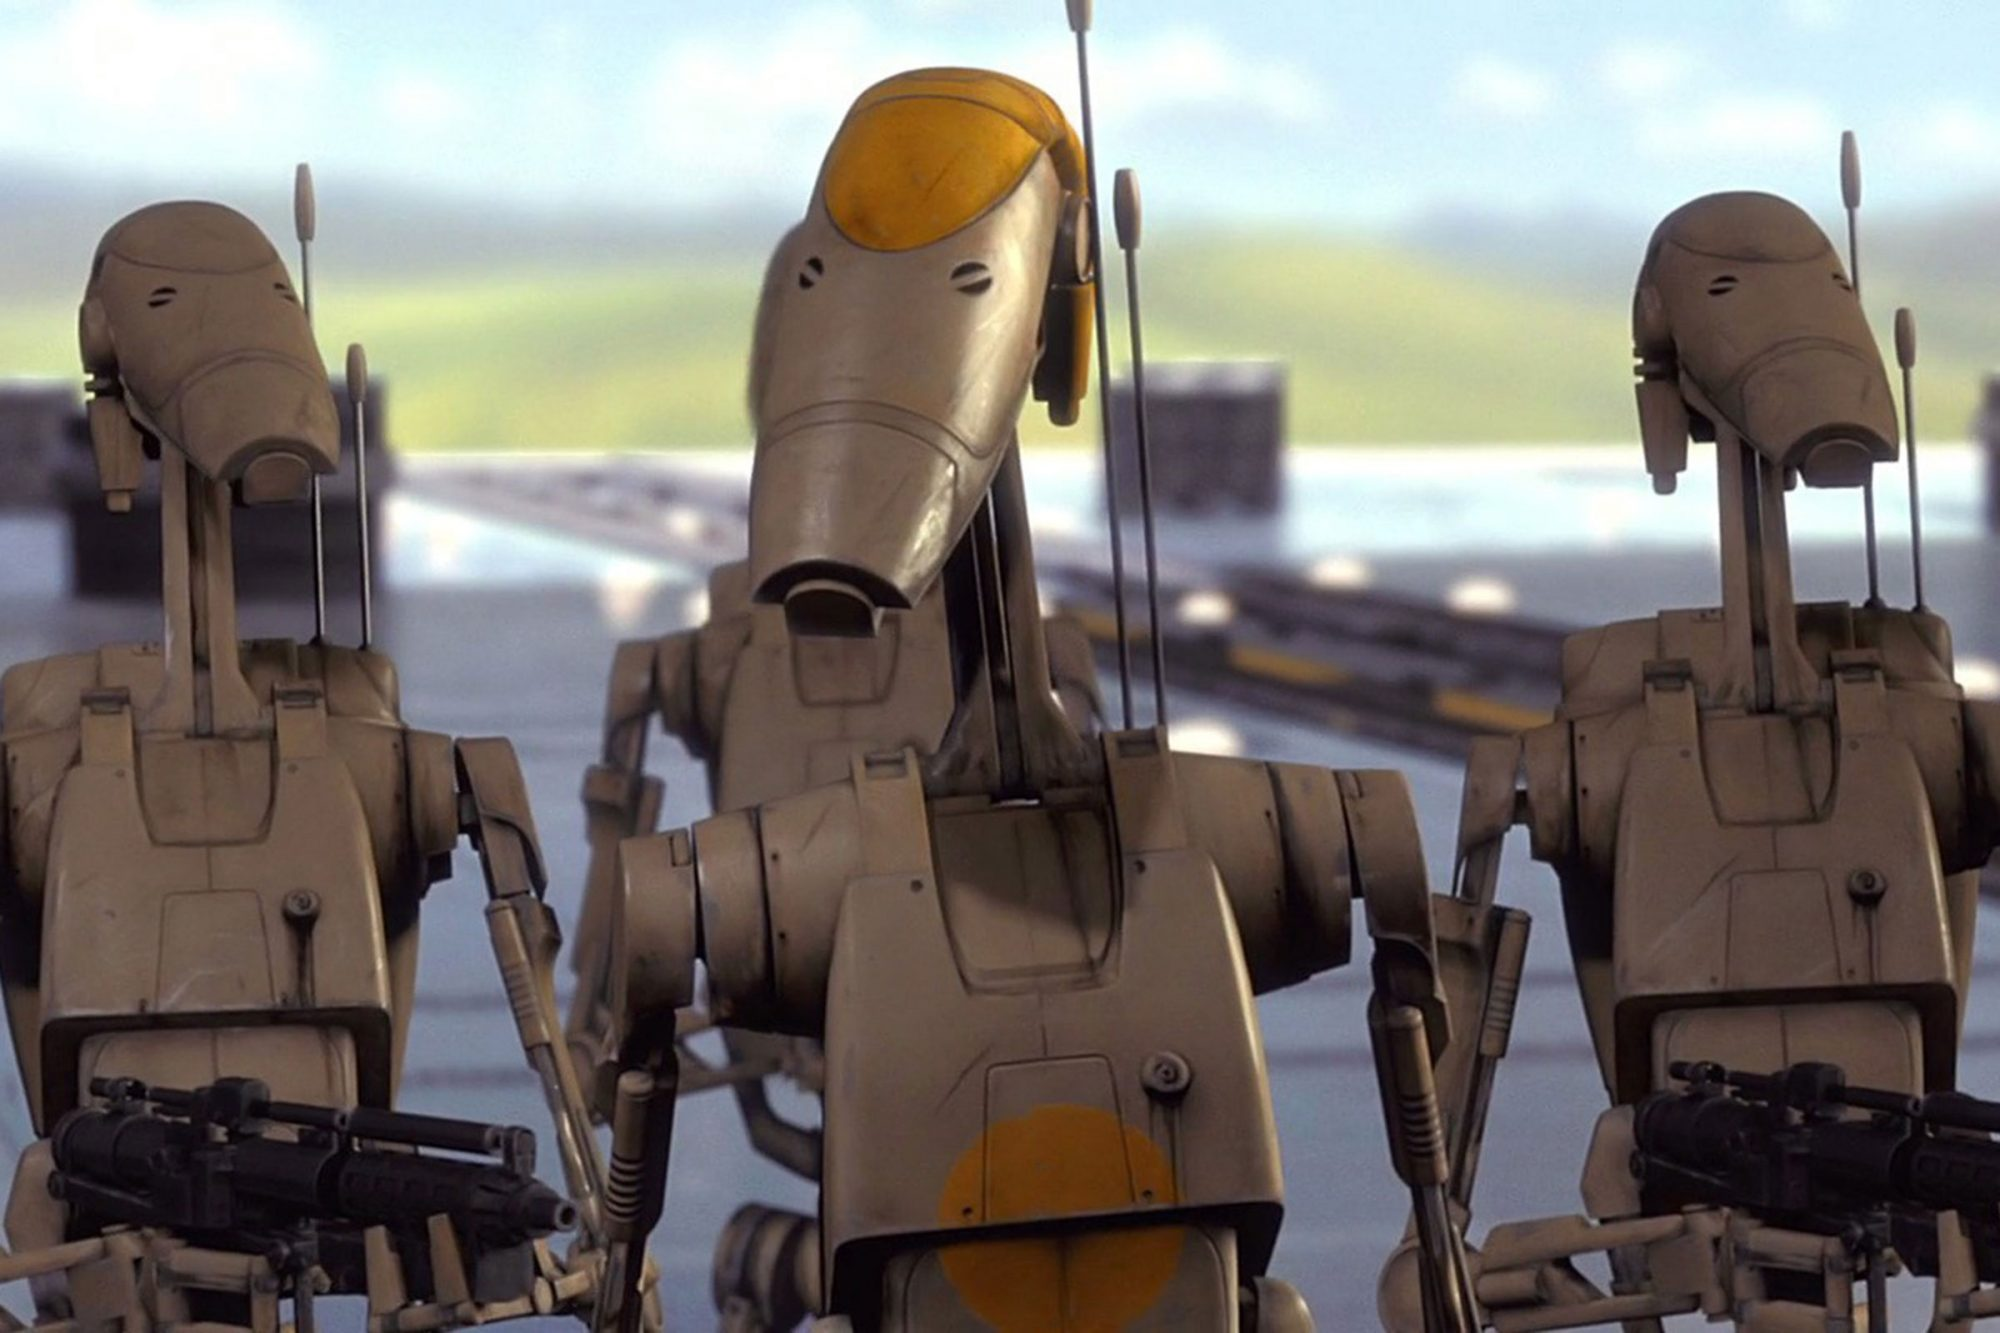 24. Battle droids (The Phantom Menace)